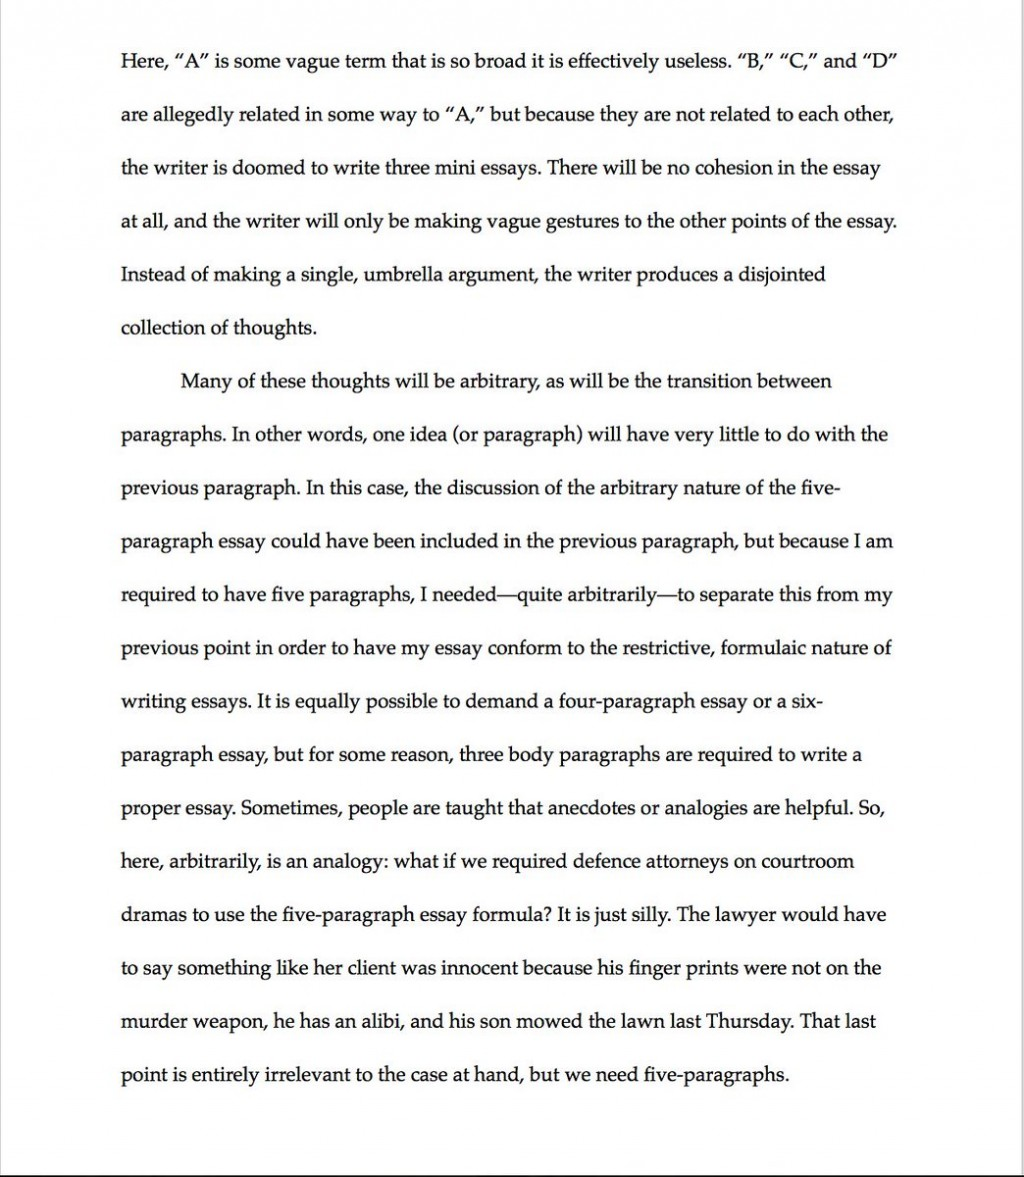 008 Essay Example How Many Paragraphs Are In Formidable A Argumentative Body Should Narrative Have Persuasive Large